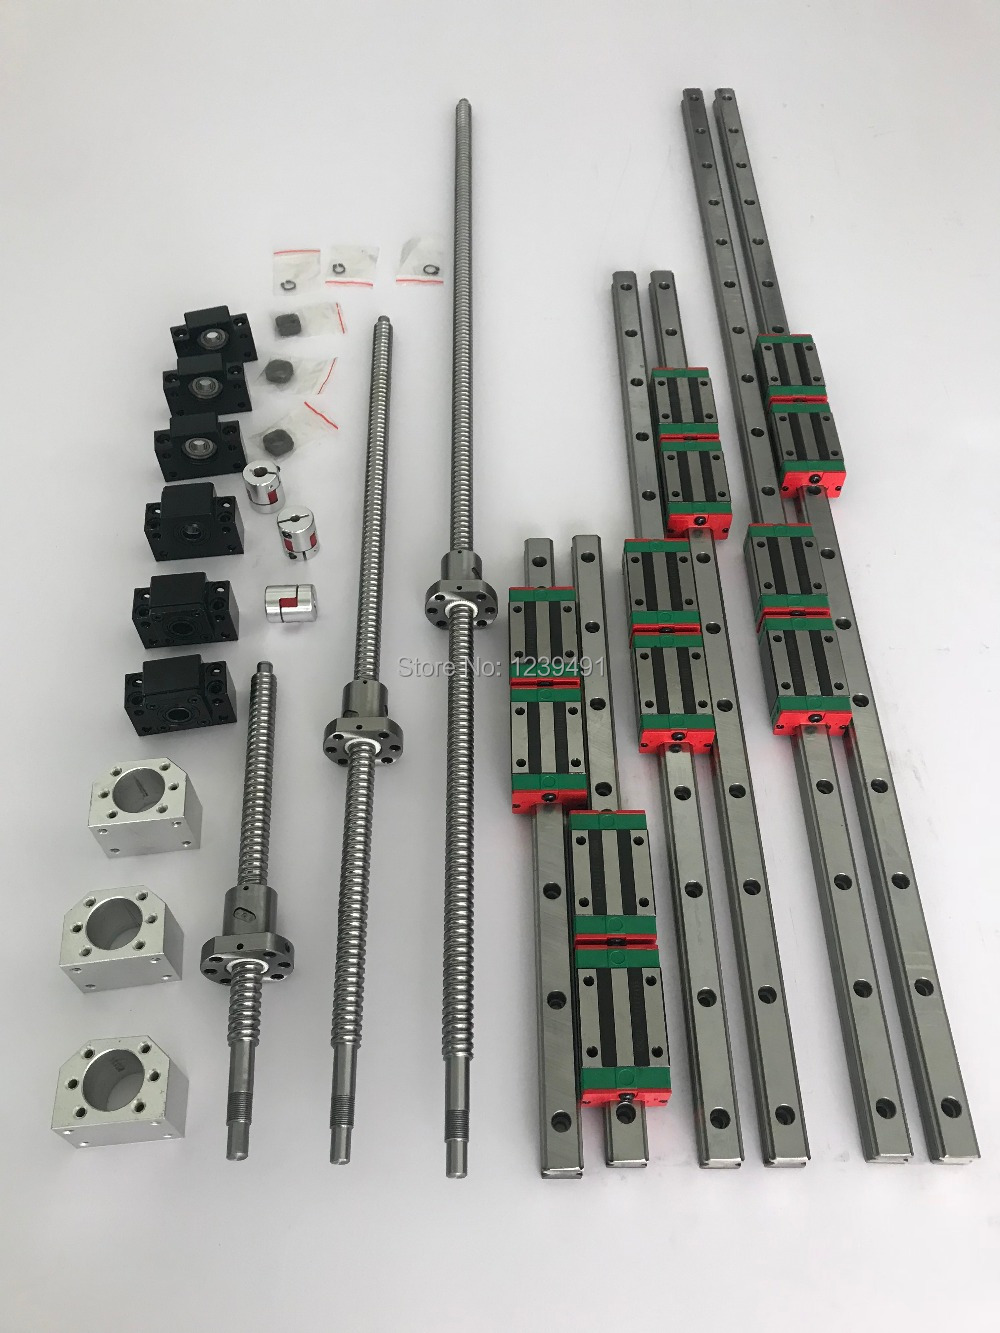 6 sets Square Linear guide HGR20- 400/700/1000mm + Ballscrew SFU1610- 400/700/1000mm + BK/B12 + Nut housing + Coupling CNC parts 3sets square linear rails kit l 400 700 1000mm